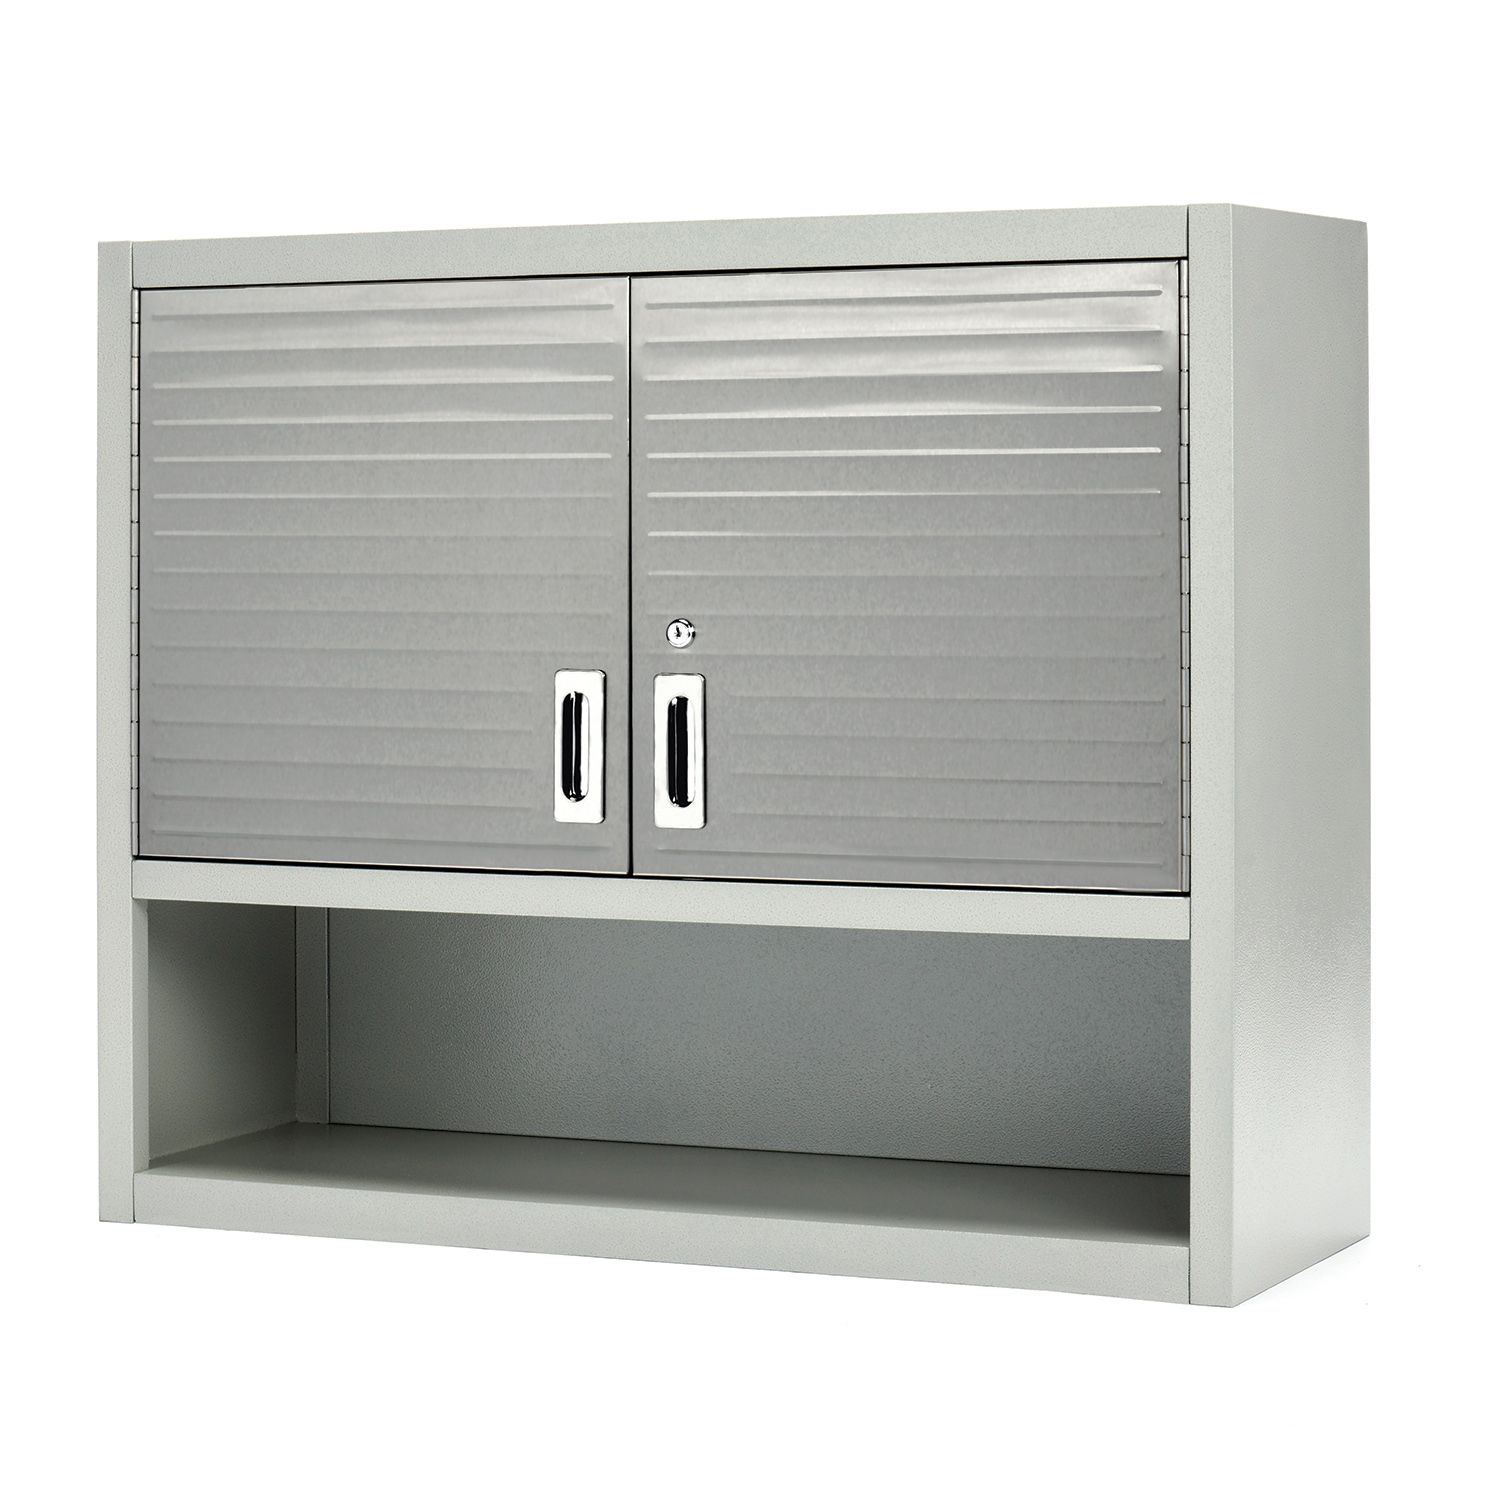 Product Image Seville Classics UltraHD Wall Cabinet With Open Shelf